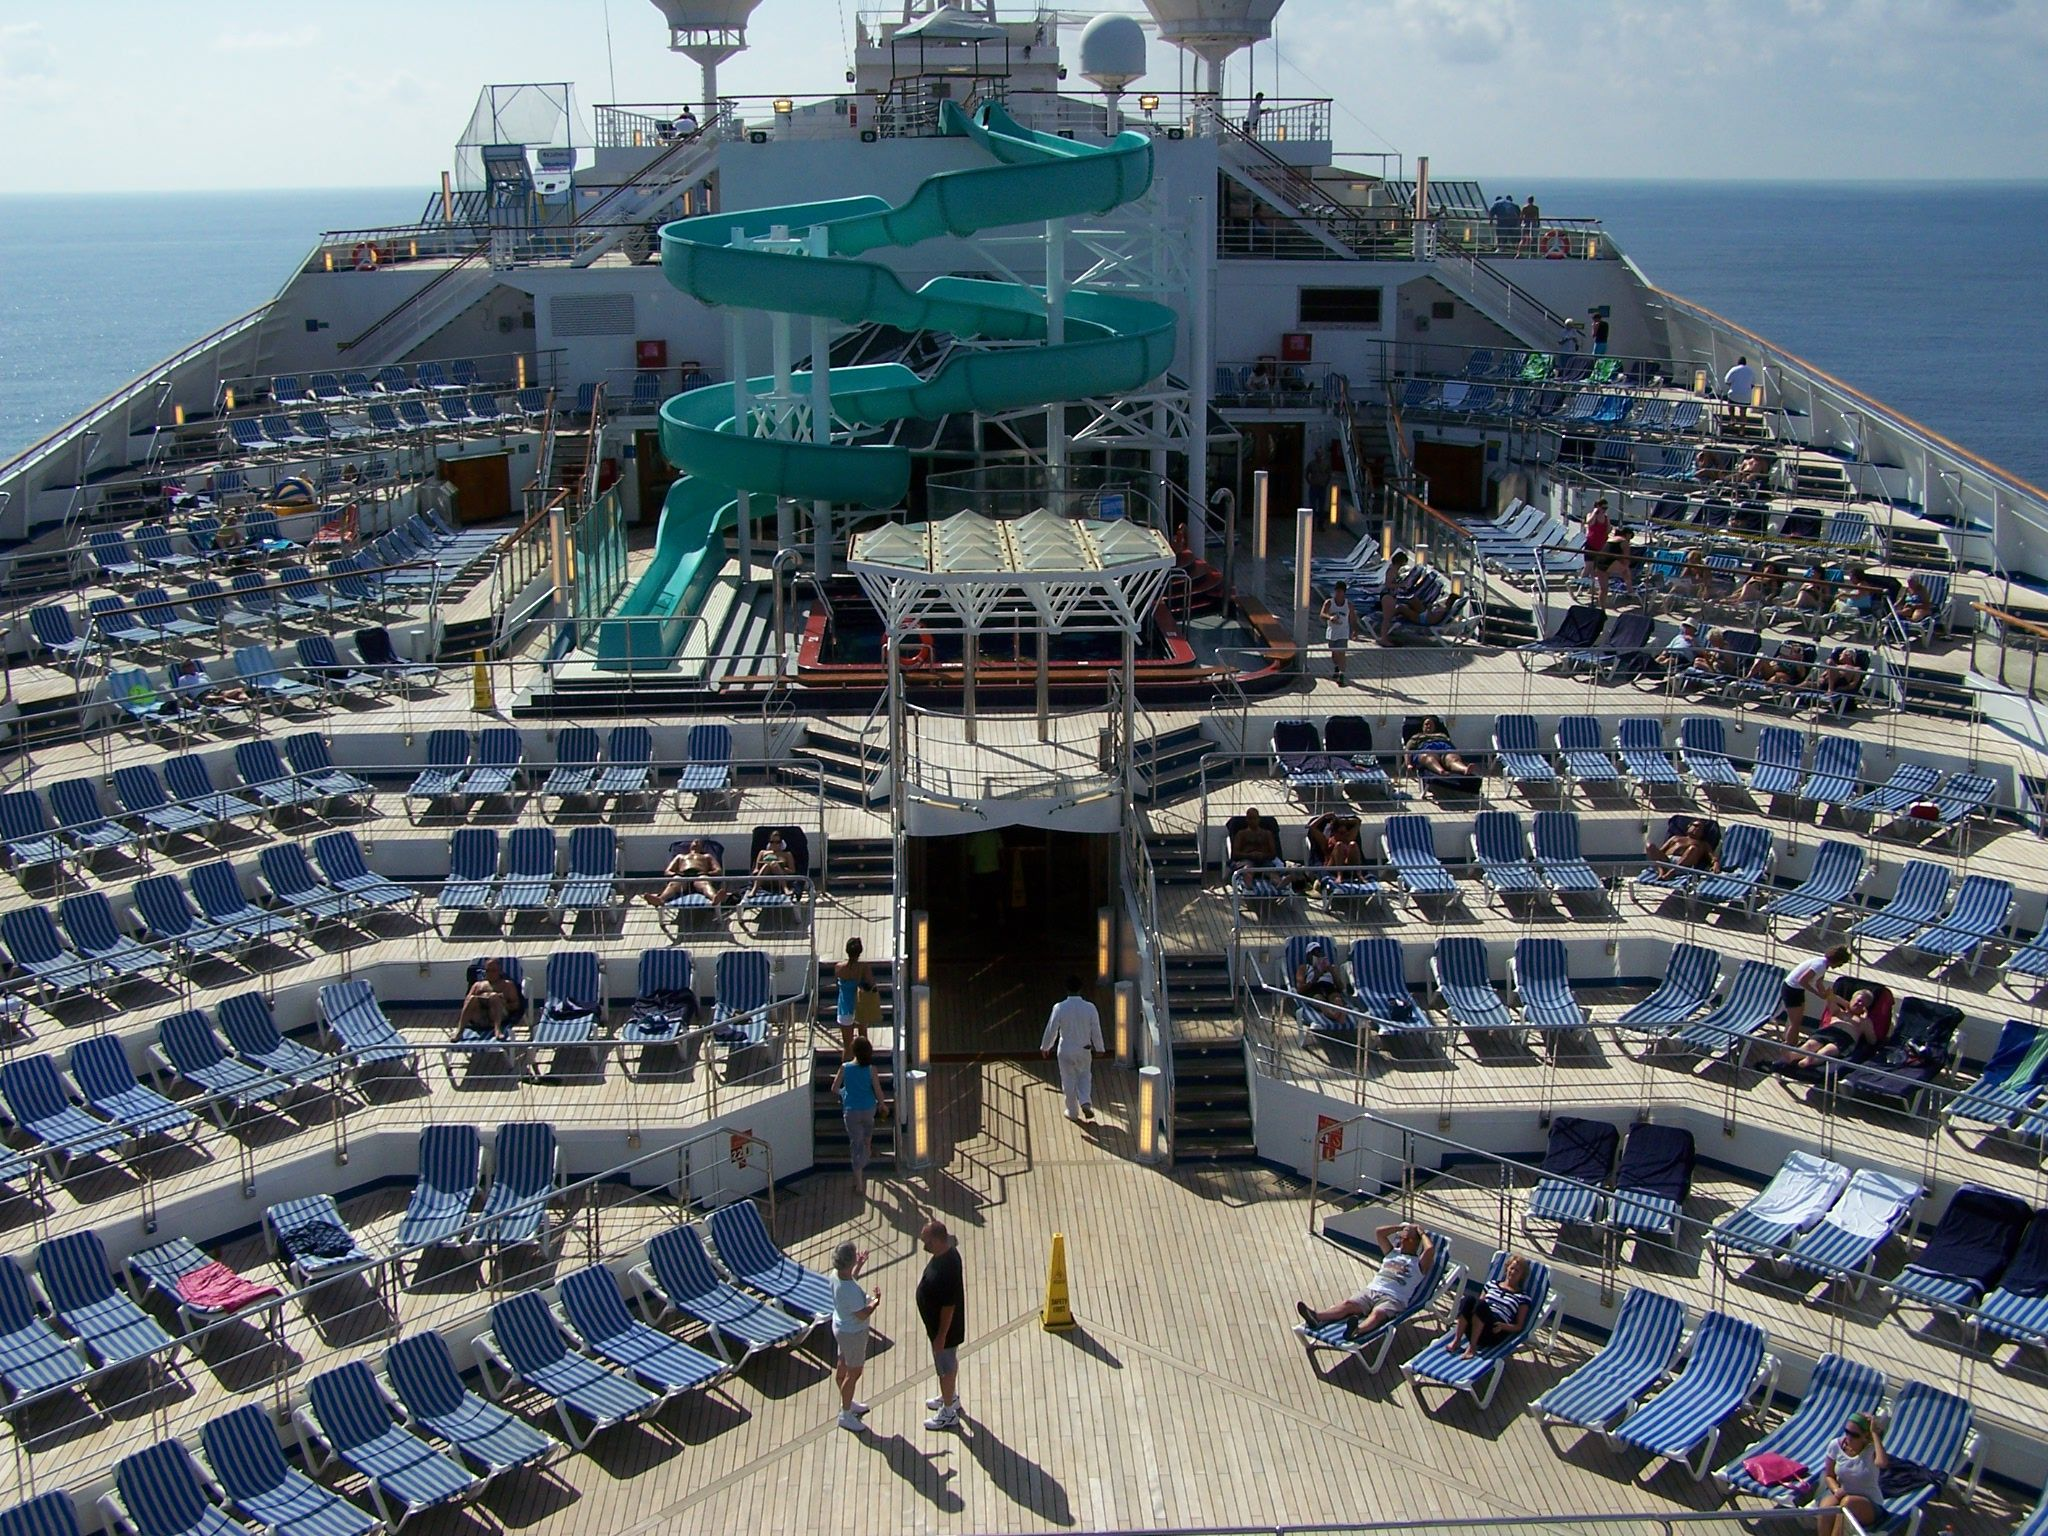 Carnival Triumph Pool Deck Places I Have Been